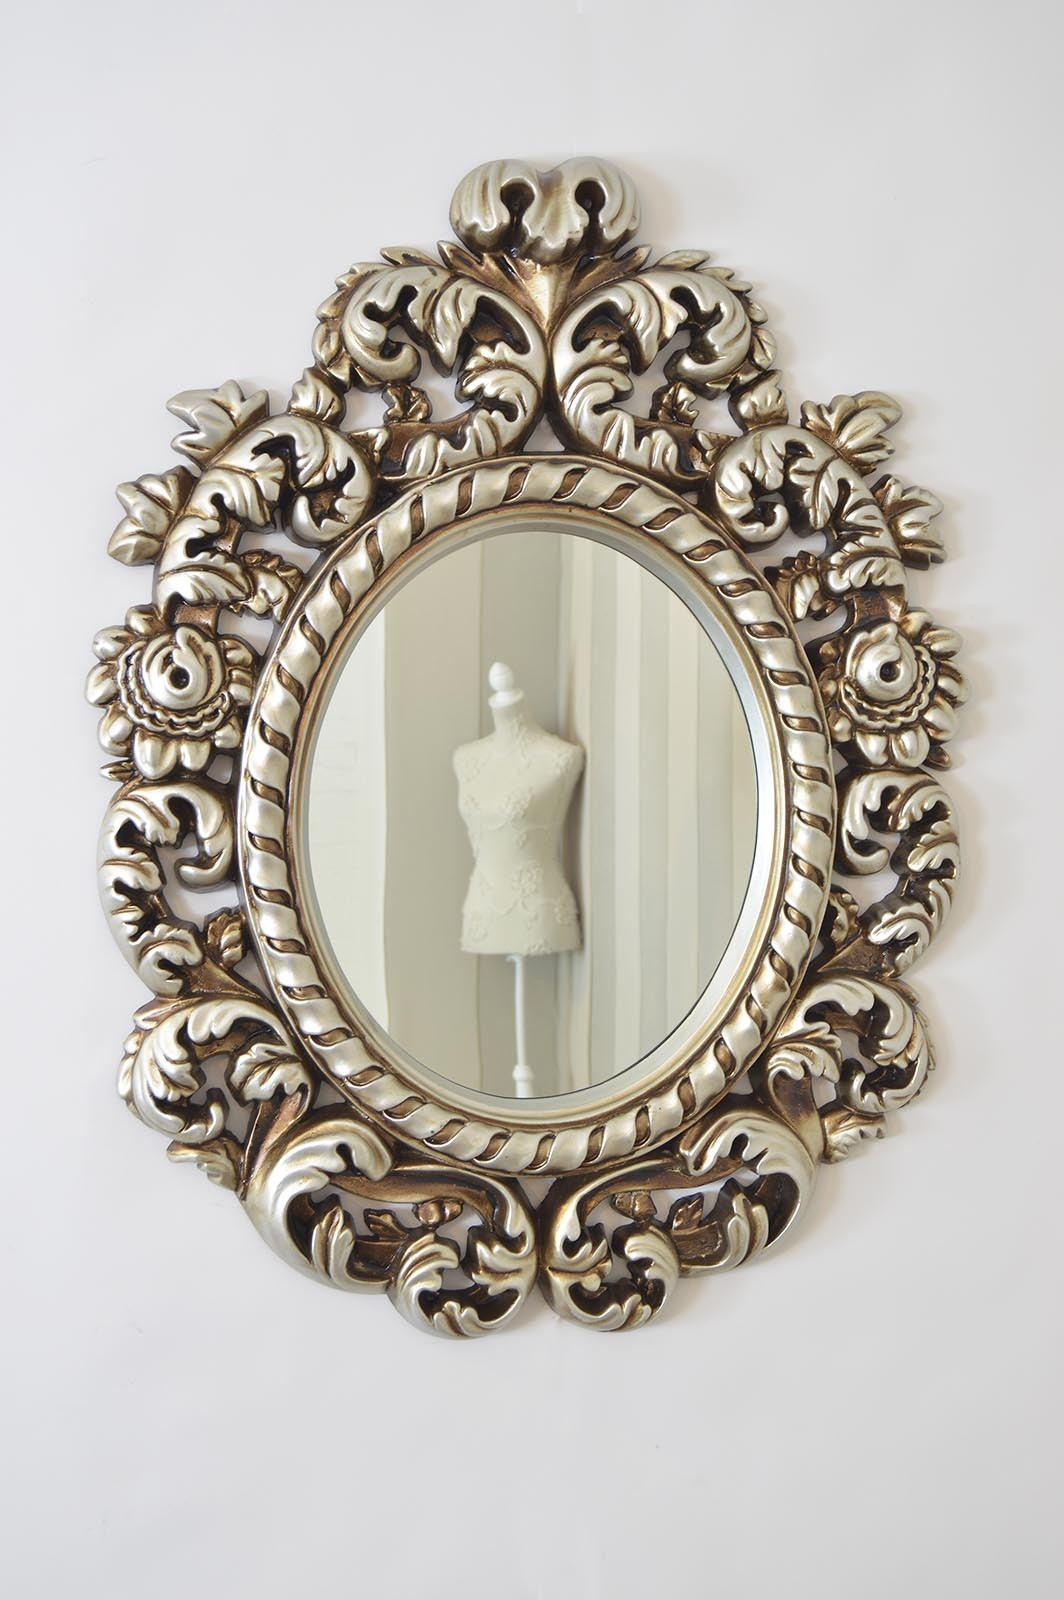 Large Decorative Silver Antique Style Portrait Wall Mirror 3ft3 X Inside Antique Style Mirrors Wall (View 7 of 15)